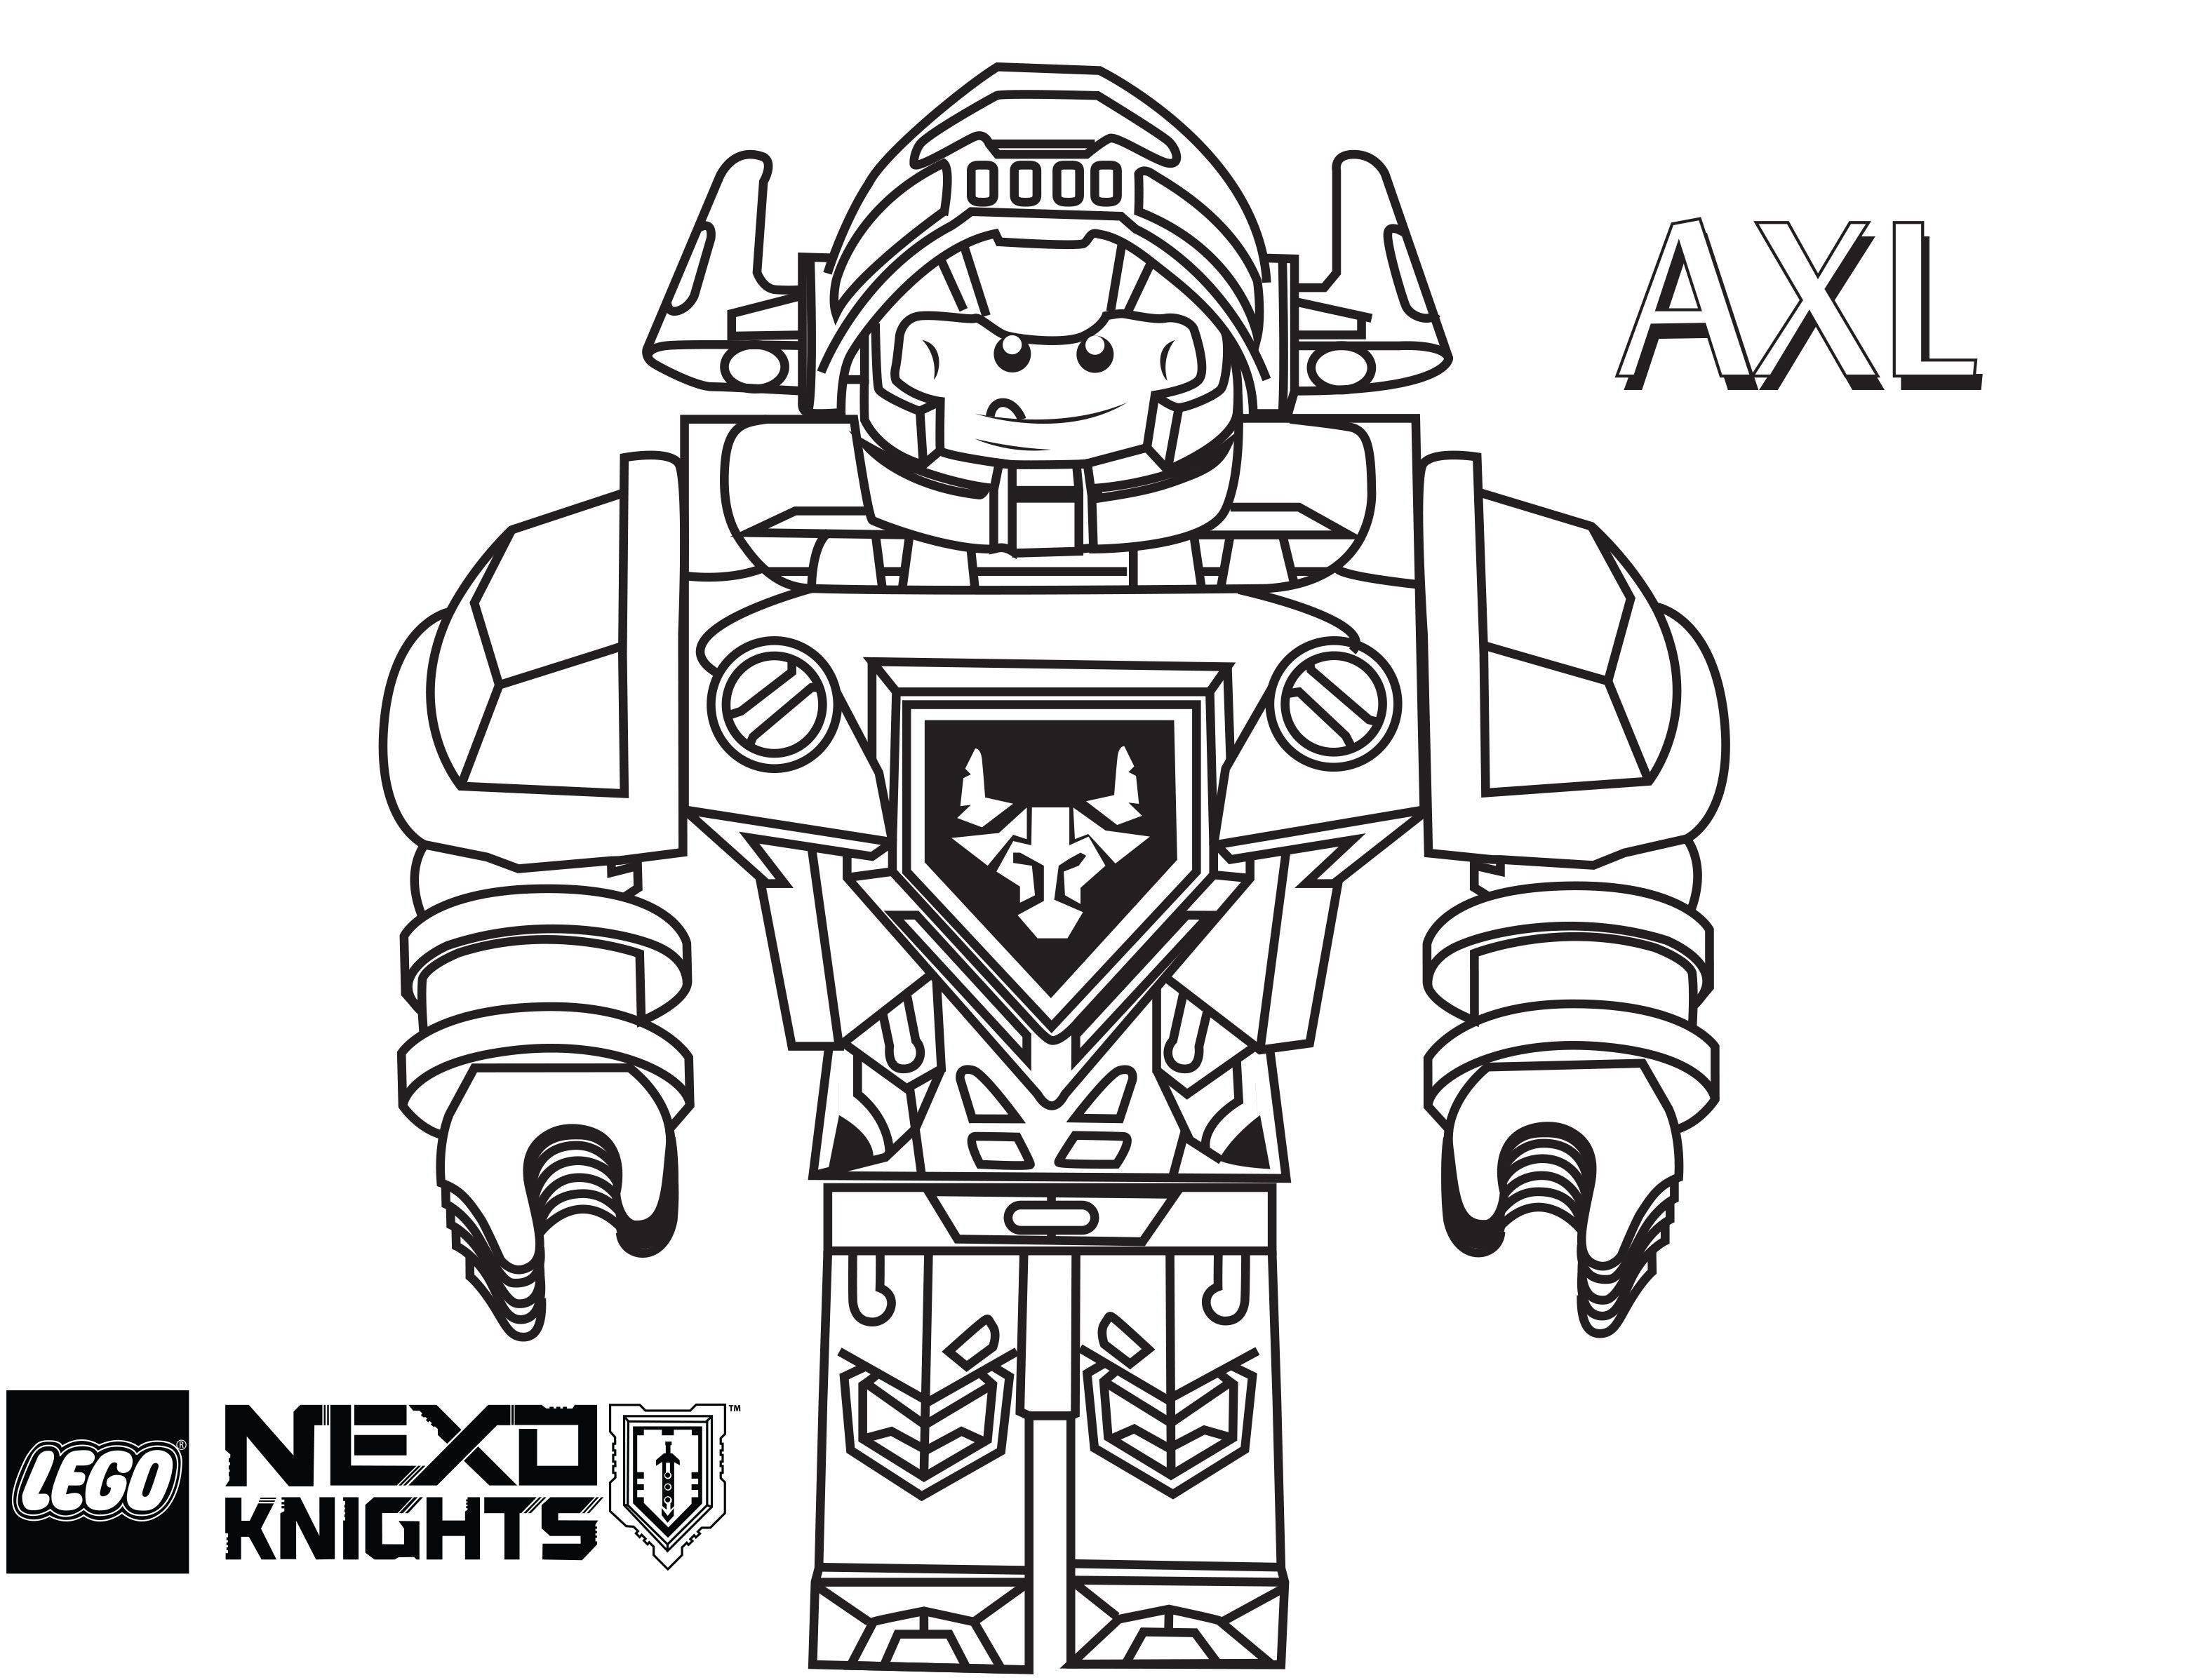 Lego Nexo Knights Coloring Pages Free Printable Lego Nexo Knights Color Sheets Lego Coloring Pages Lego Coloring Coloring Books